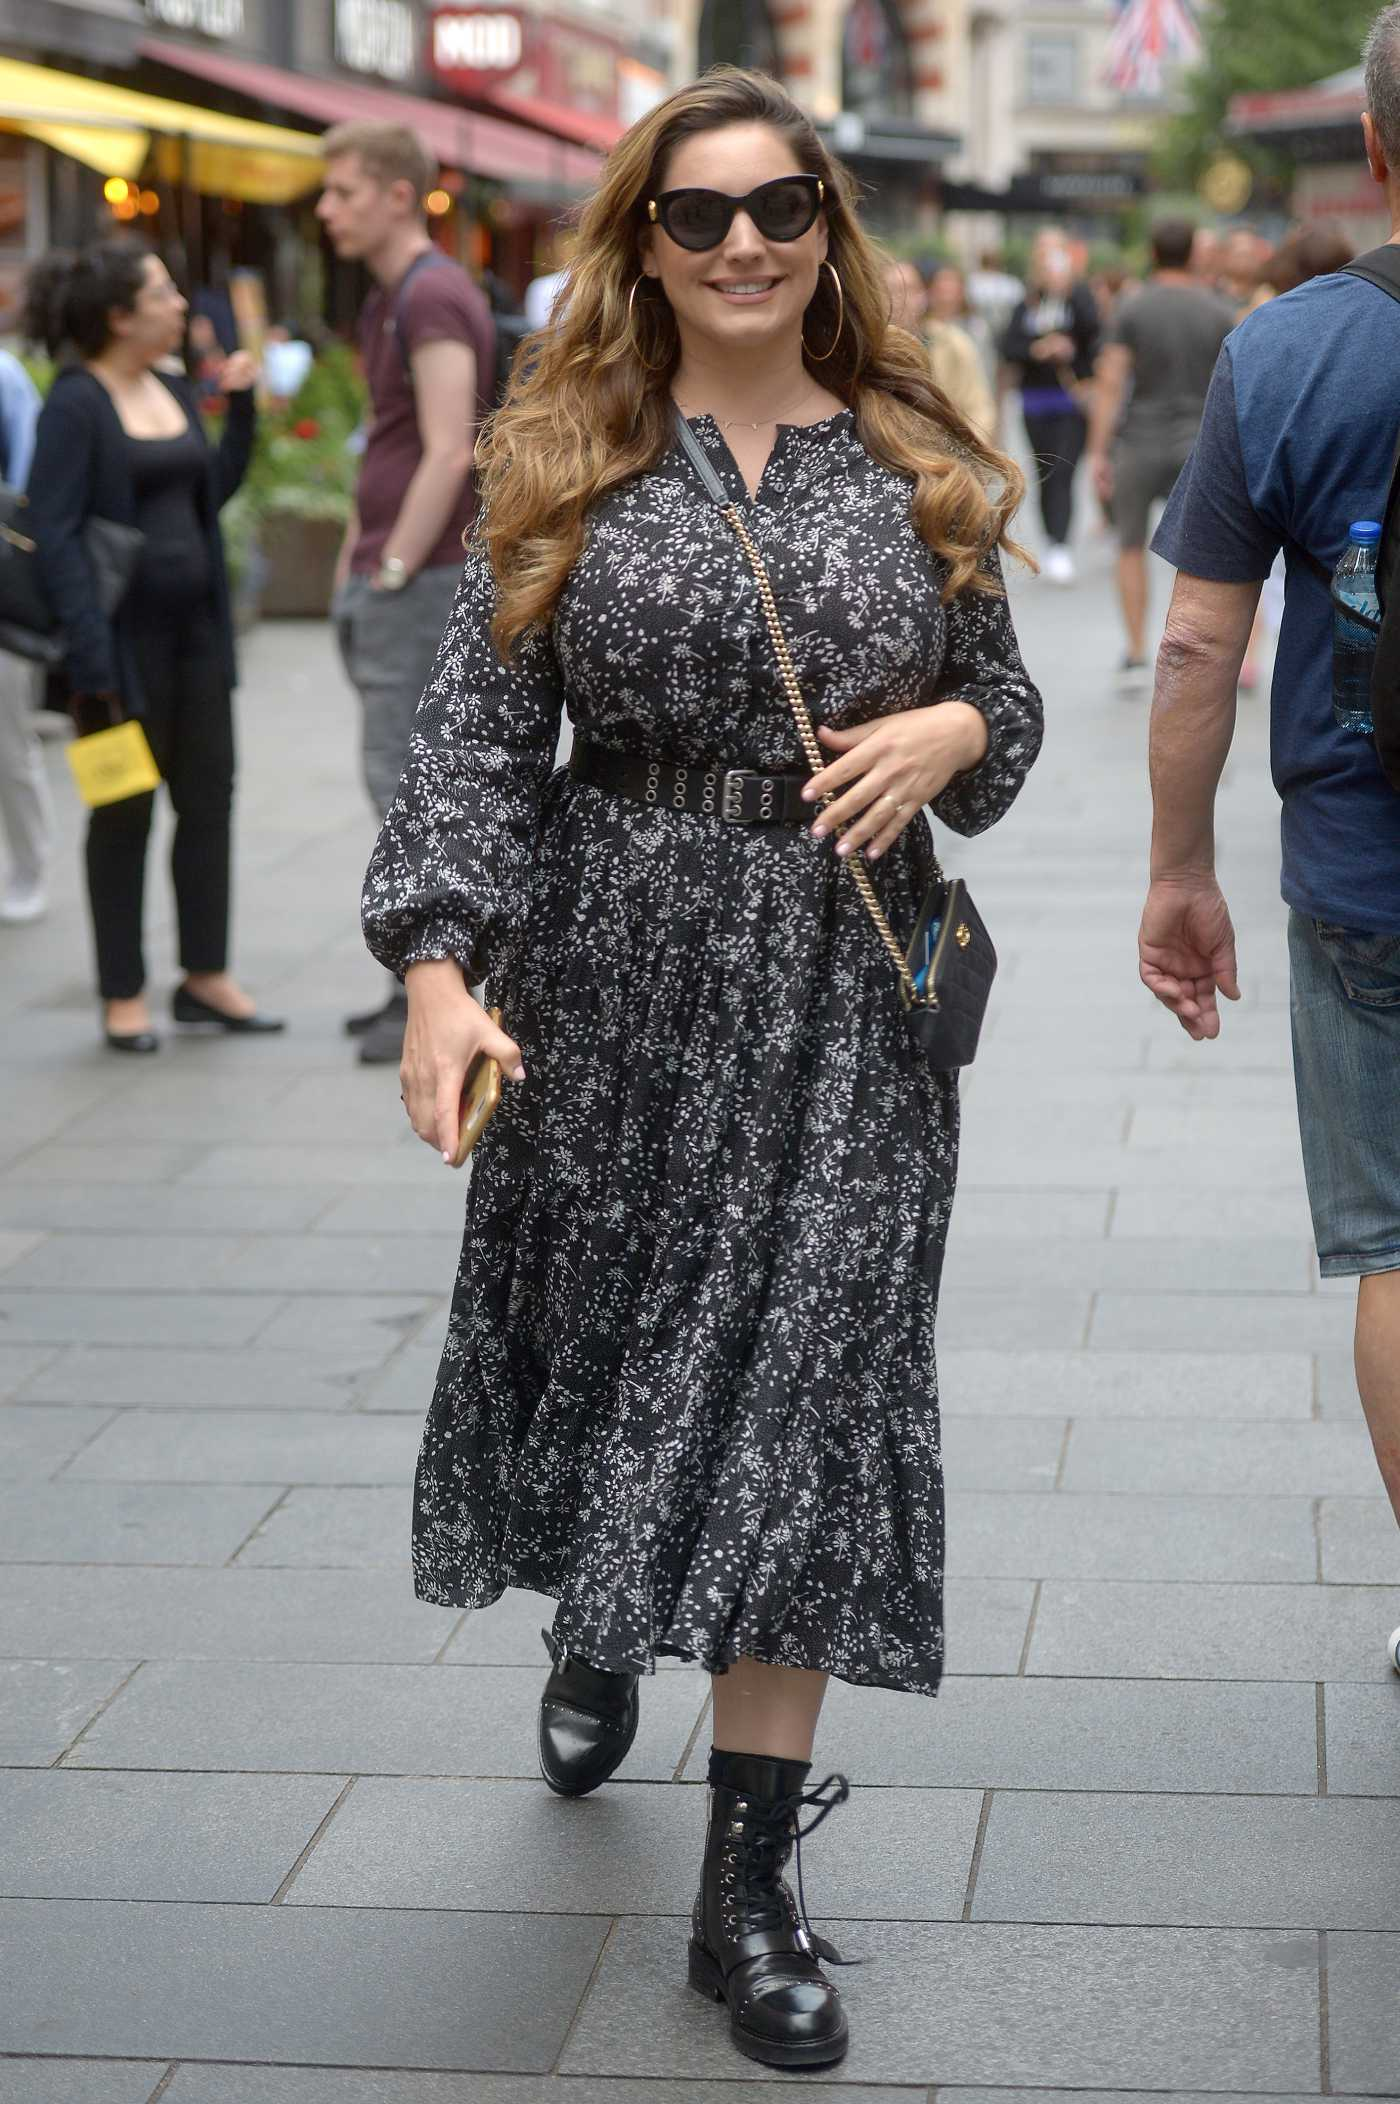 Kelly Brook in a Black Floral Dress Arrives at Global Radio Studios in London 08/05/2019